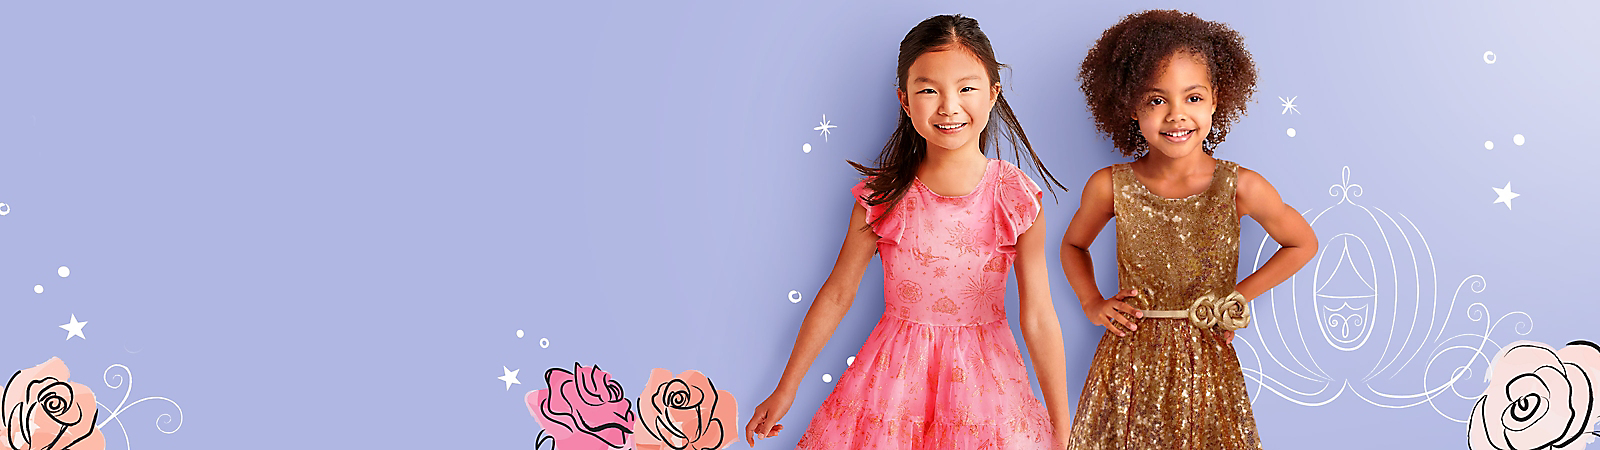 Disney Dresses & Skirts for Girls Latest twirl-tastic dresses and skirts fit for trendsetters.